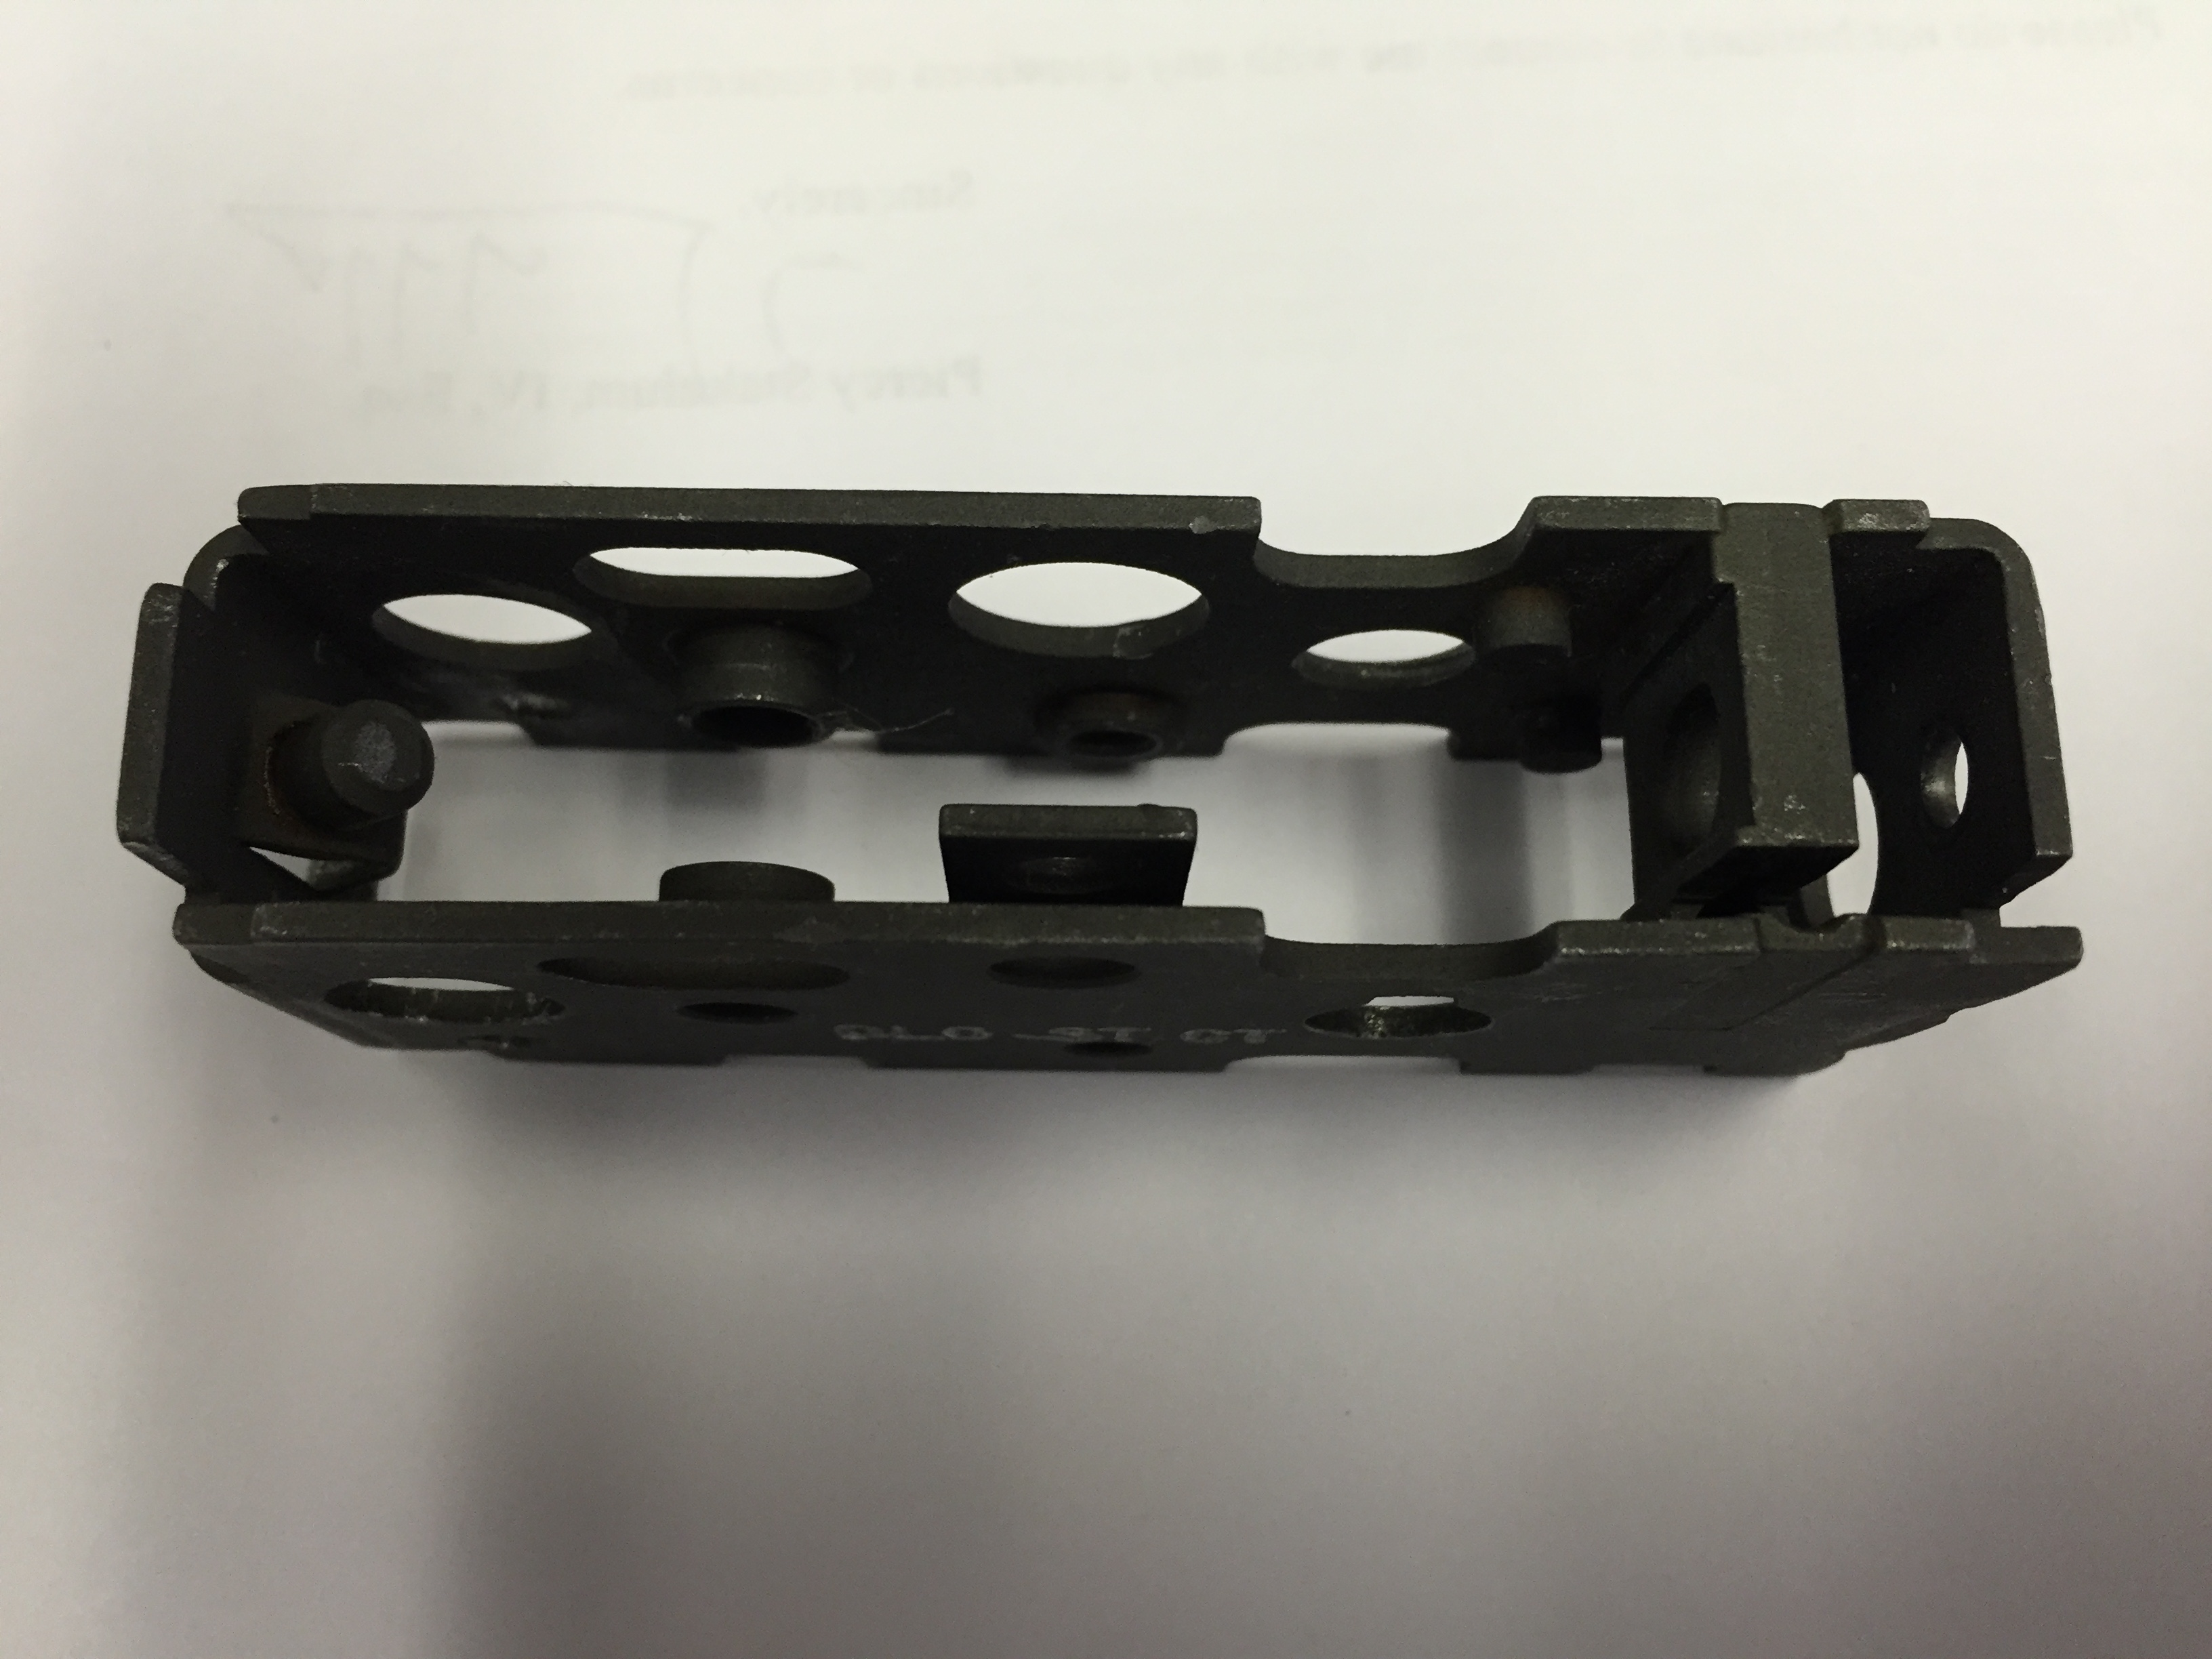 Info/Pics of Different Manufacturers Registered HK Trigger Packs, Sears an Housings-dlo4.jpg